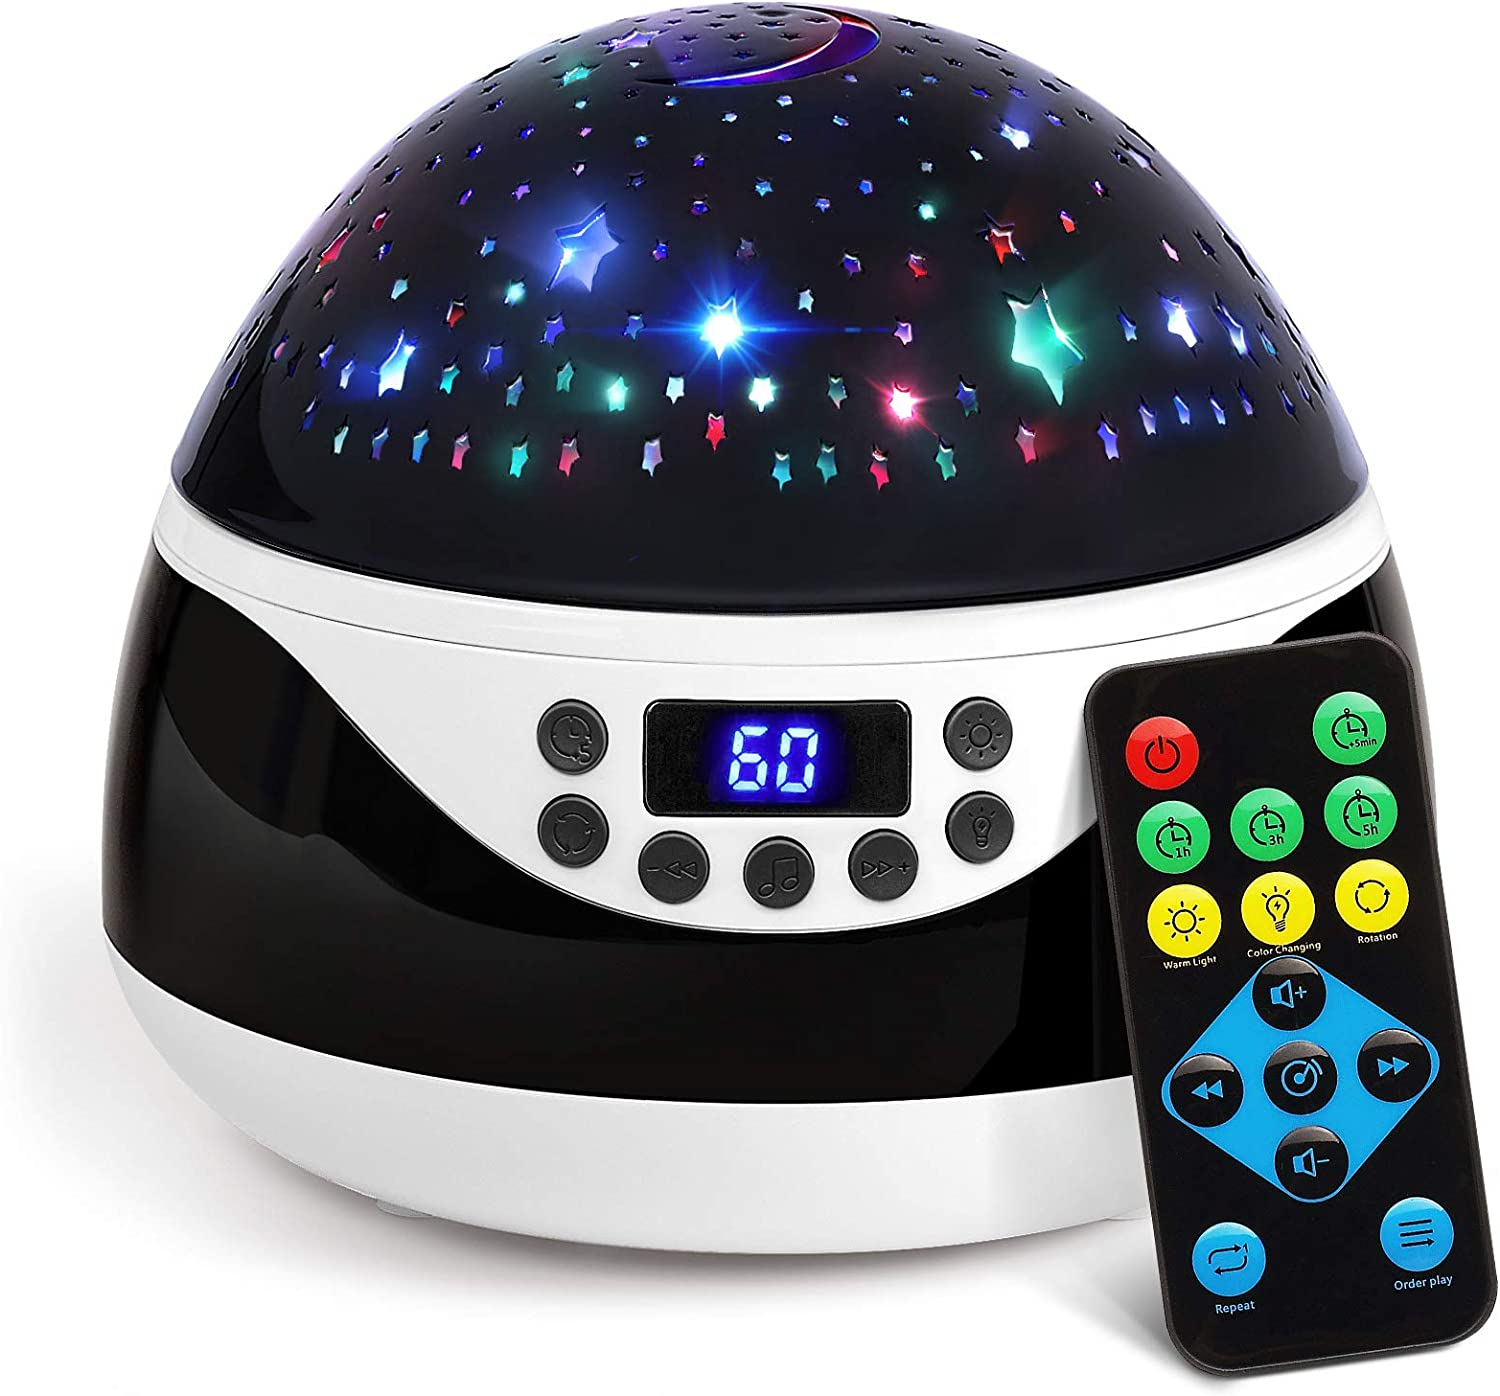 2019 Newest Baby Night Light, AnanBros Remote Control Star Projector with Timer Music Player, Rotating Star Night Light 9 Color Options, Best Night Lights for Kids Adults and Nursery Decor sleep music - 716iFTcsqtL - Sleep Music – Recommendable music gadgets for your family's good sleep